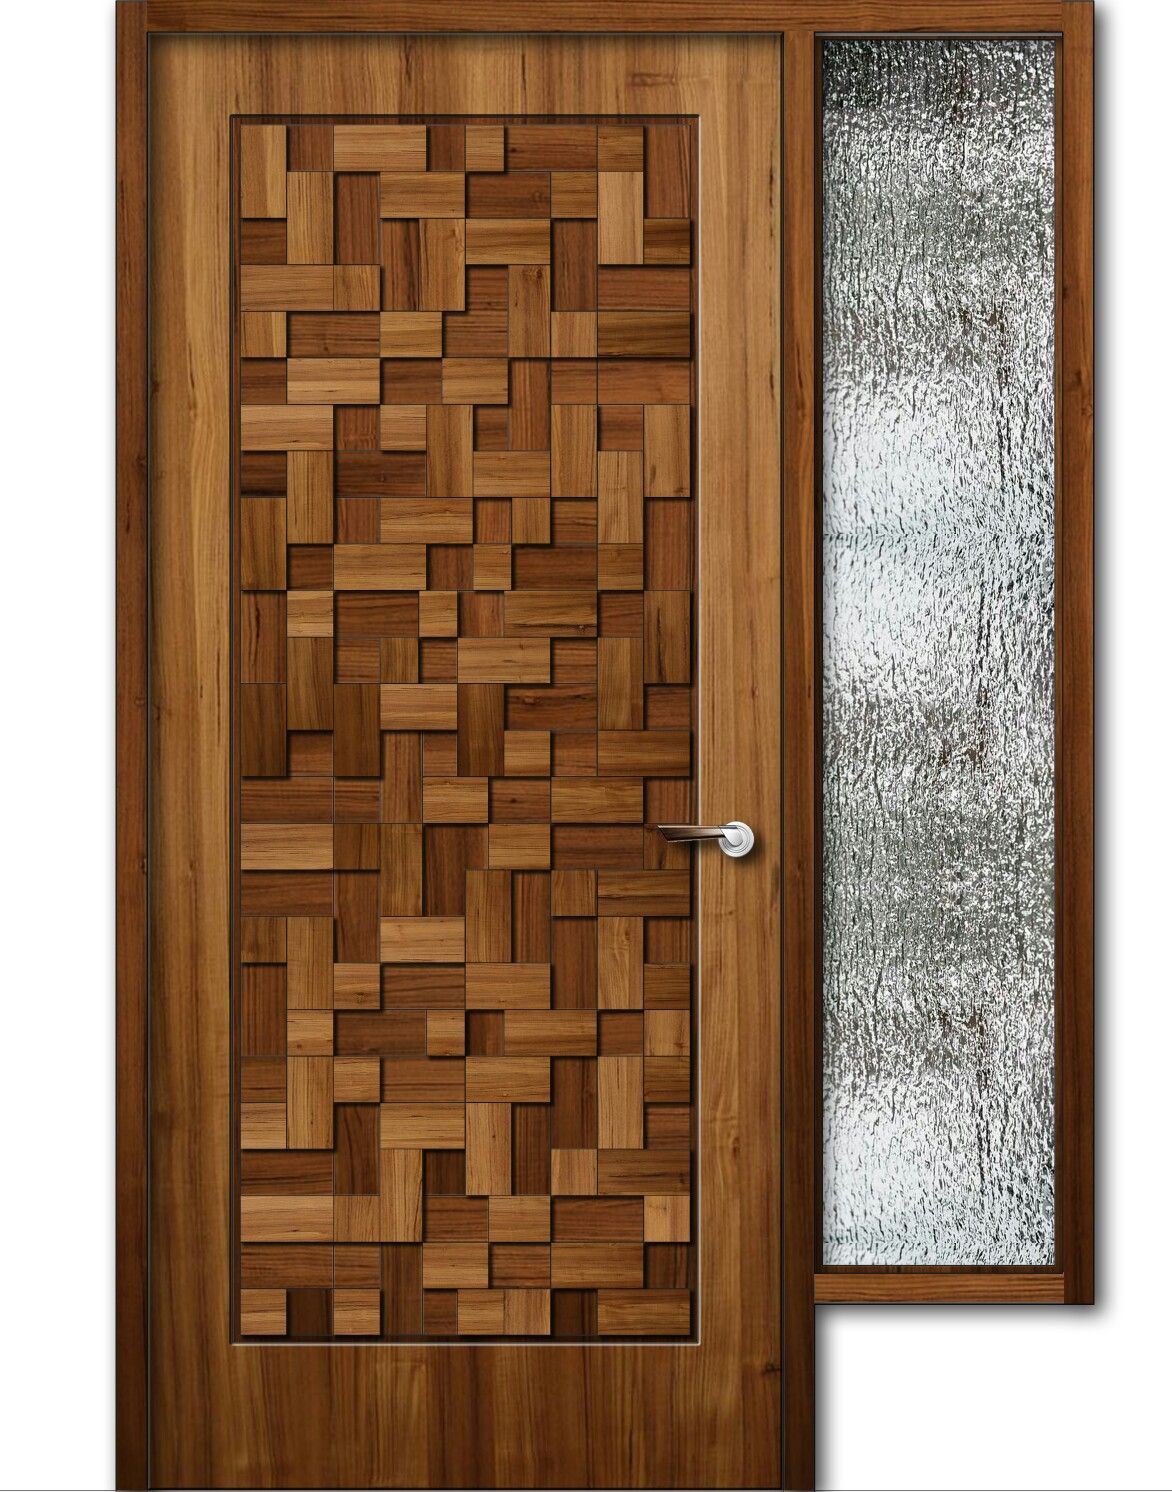 Teak wood finish wooden door with window 8feet height : wood doors - pezcame.com